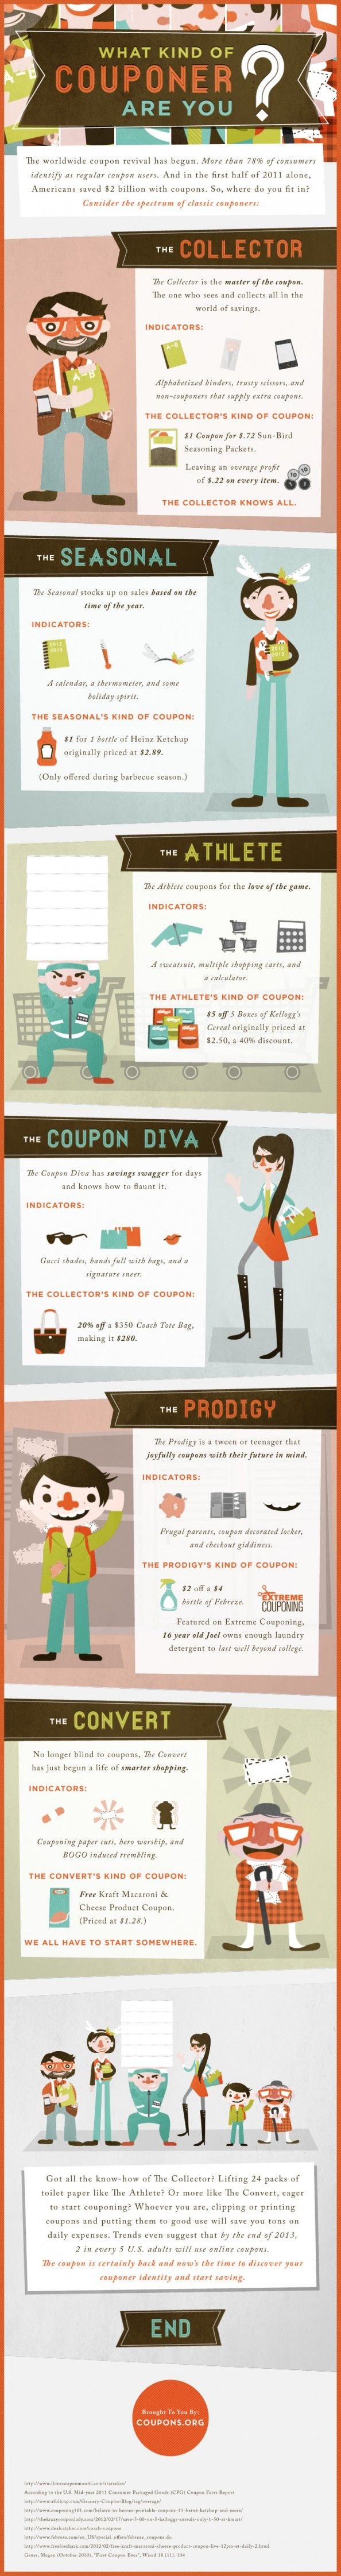 29 best 007 coupons comeback images on pinterest digital marketing what type of couponer are you infographic fandeluxe Images